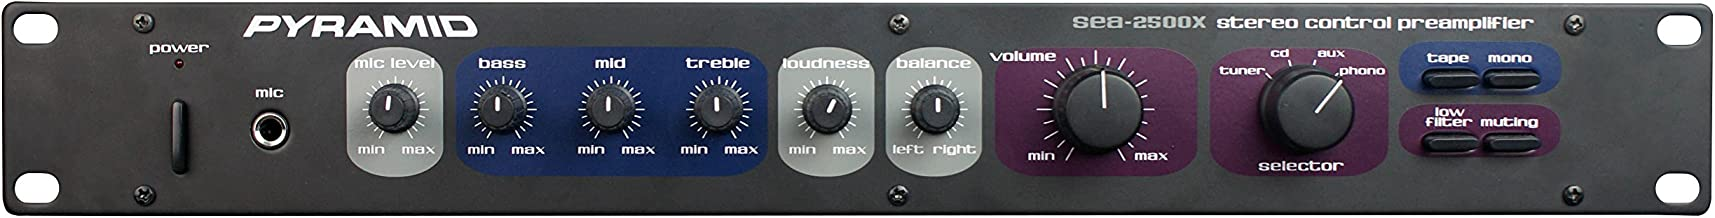 Best stereo preamplifiers for sale Reviews